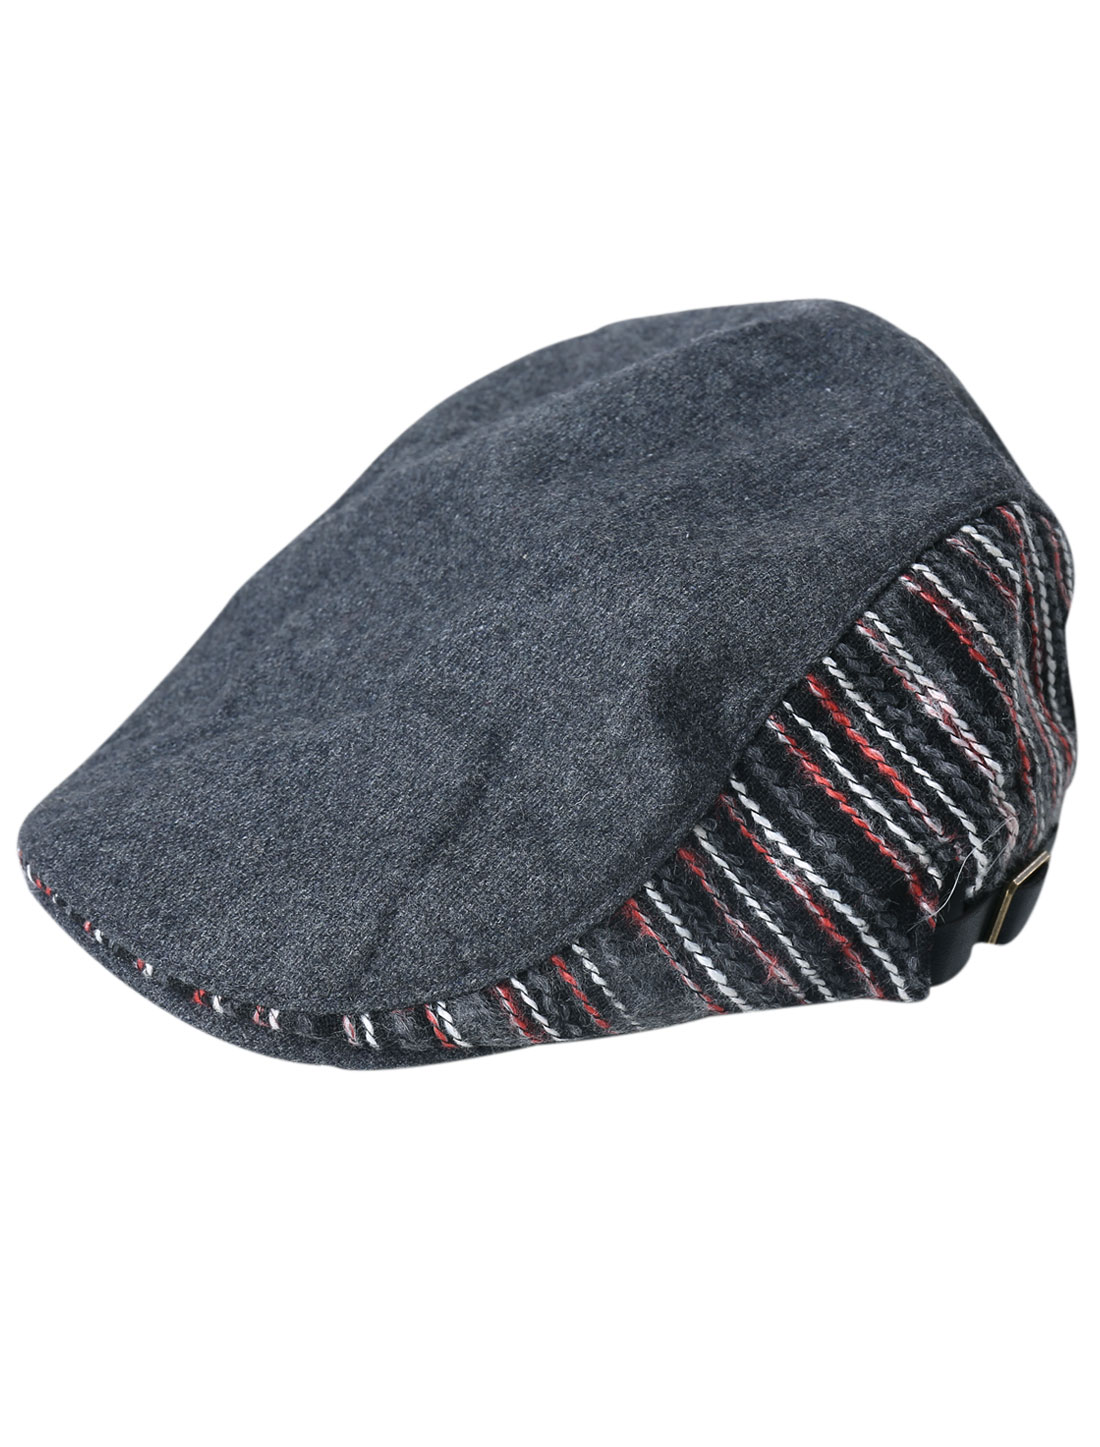 Ascot Style Stripes Embroidery Visor Cap Hat for Men